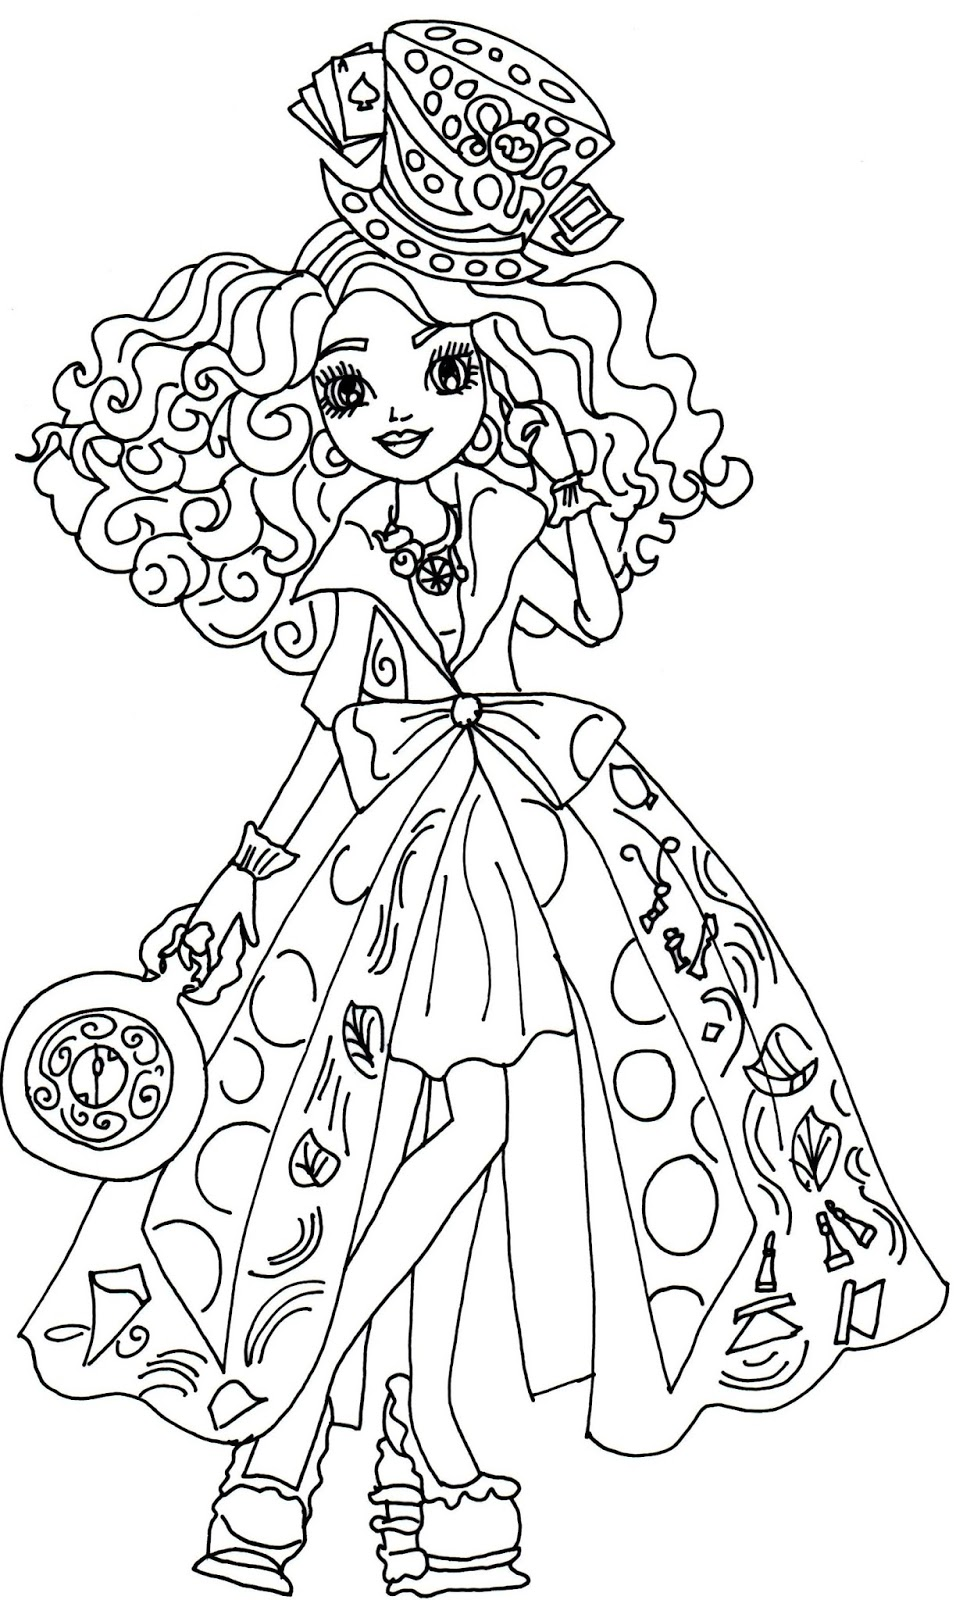 madeline coloring pages - free printable ever after high coloring pages madeline